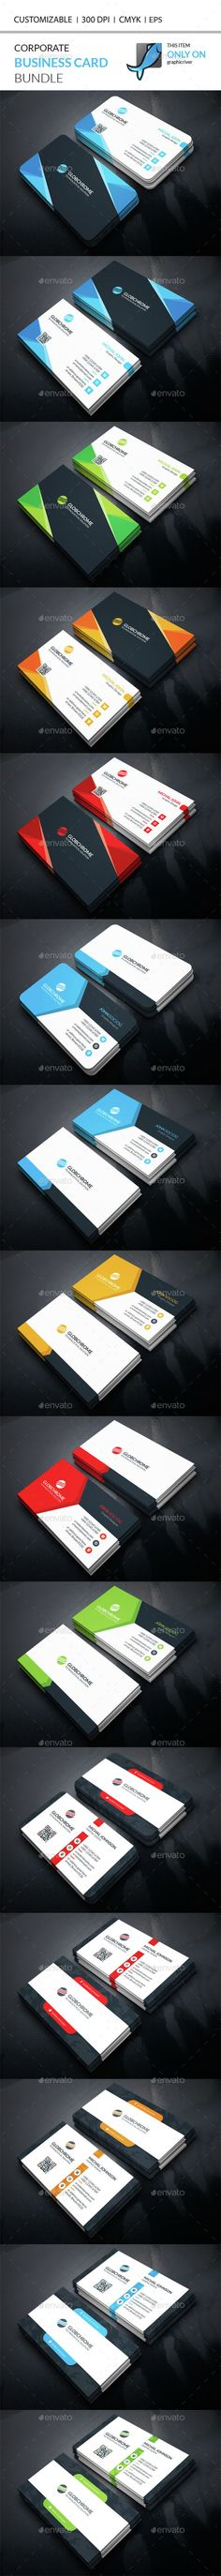 767 best design business cards images on pinterest creative corporate business card template bundle psd download here httpgraphicriver accmission Gallery